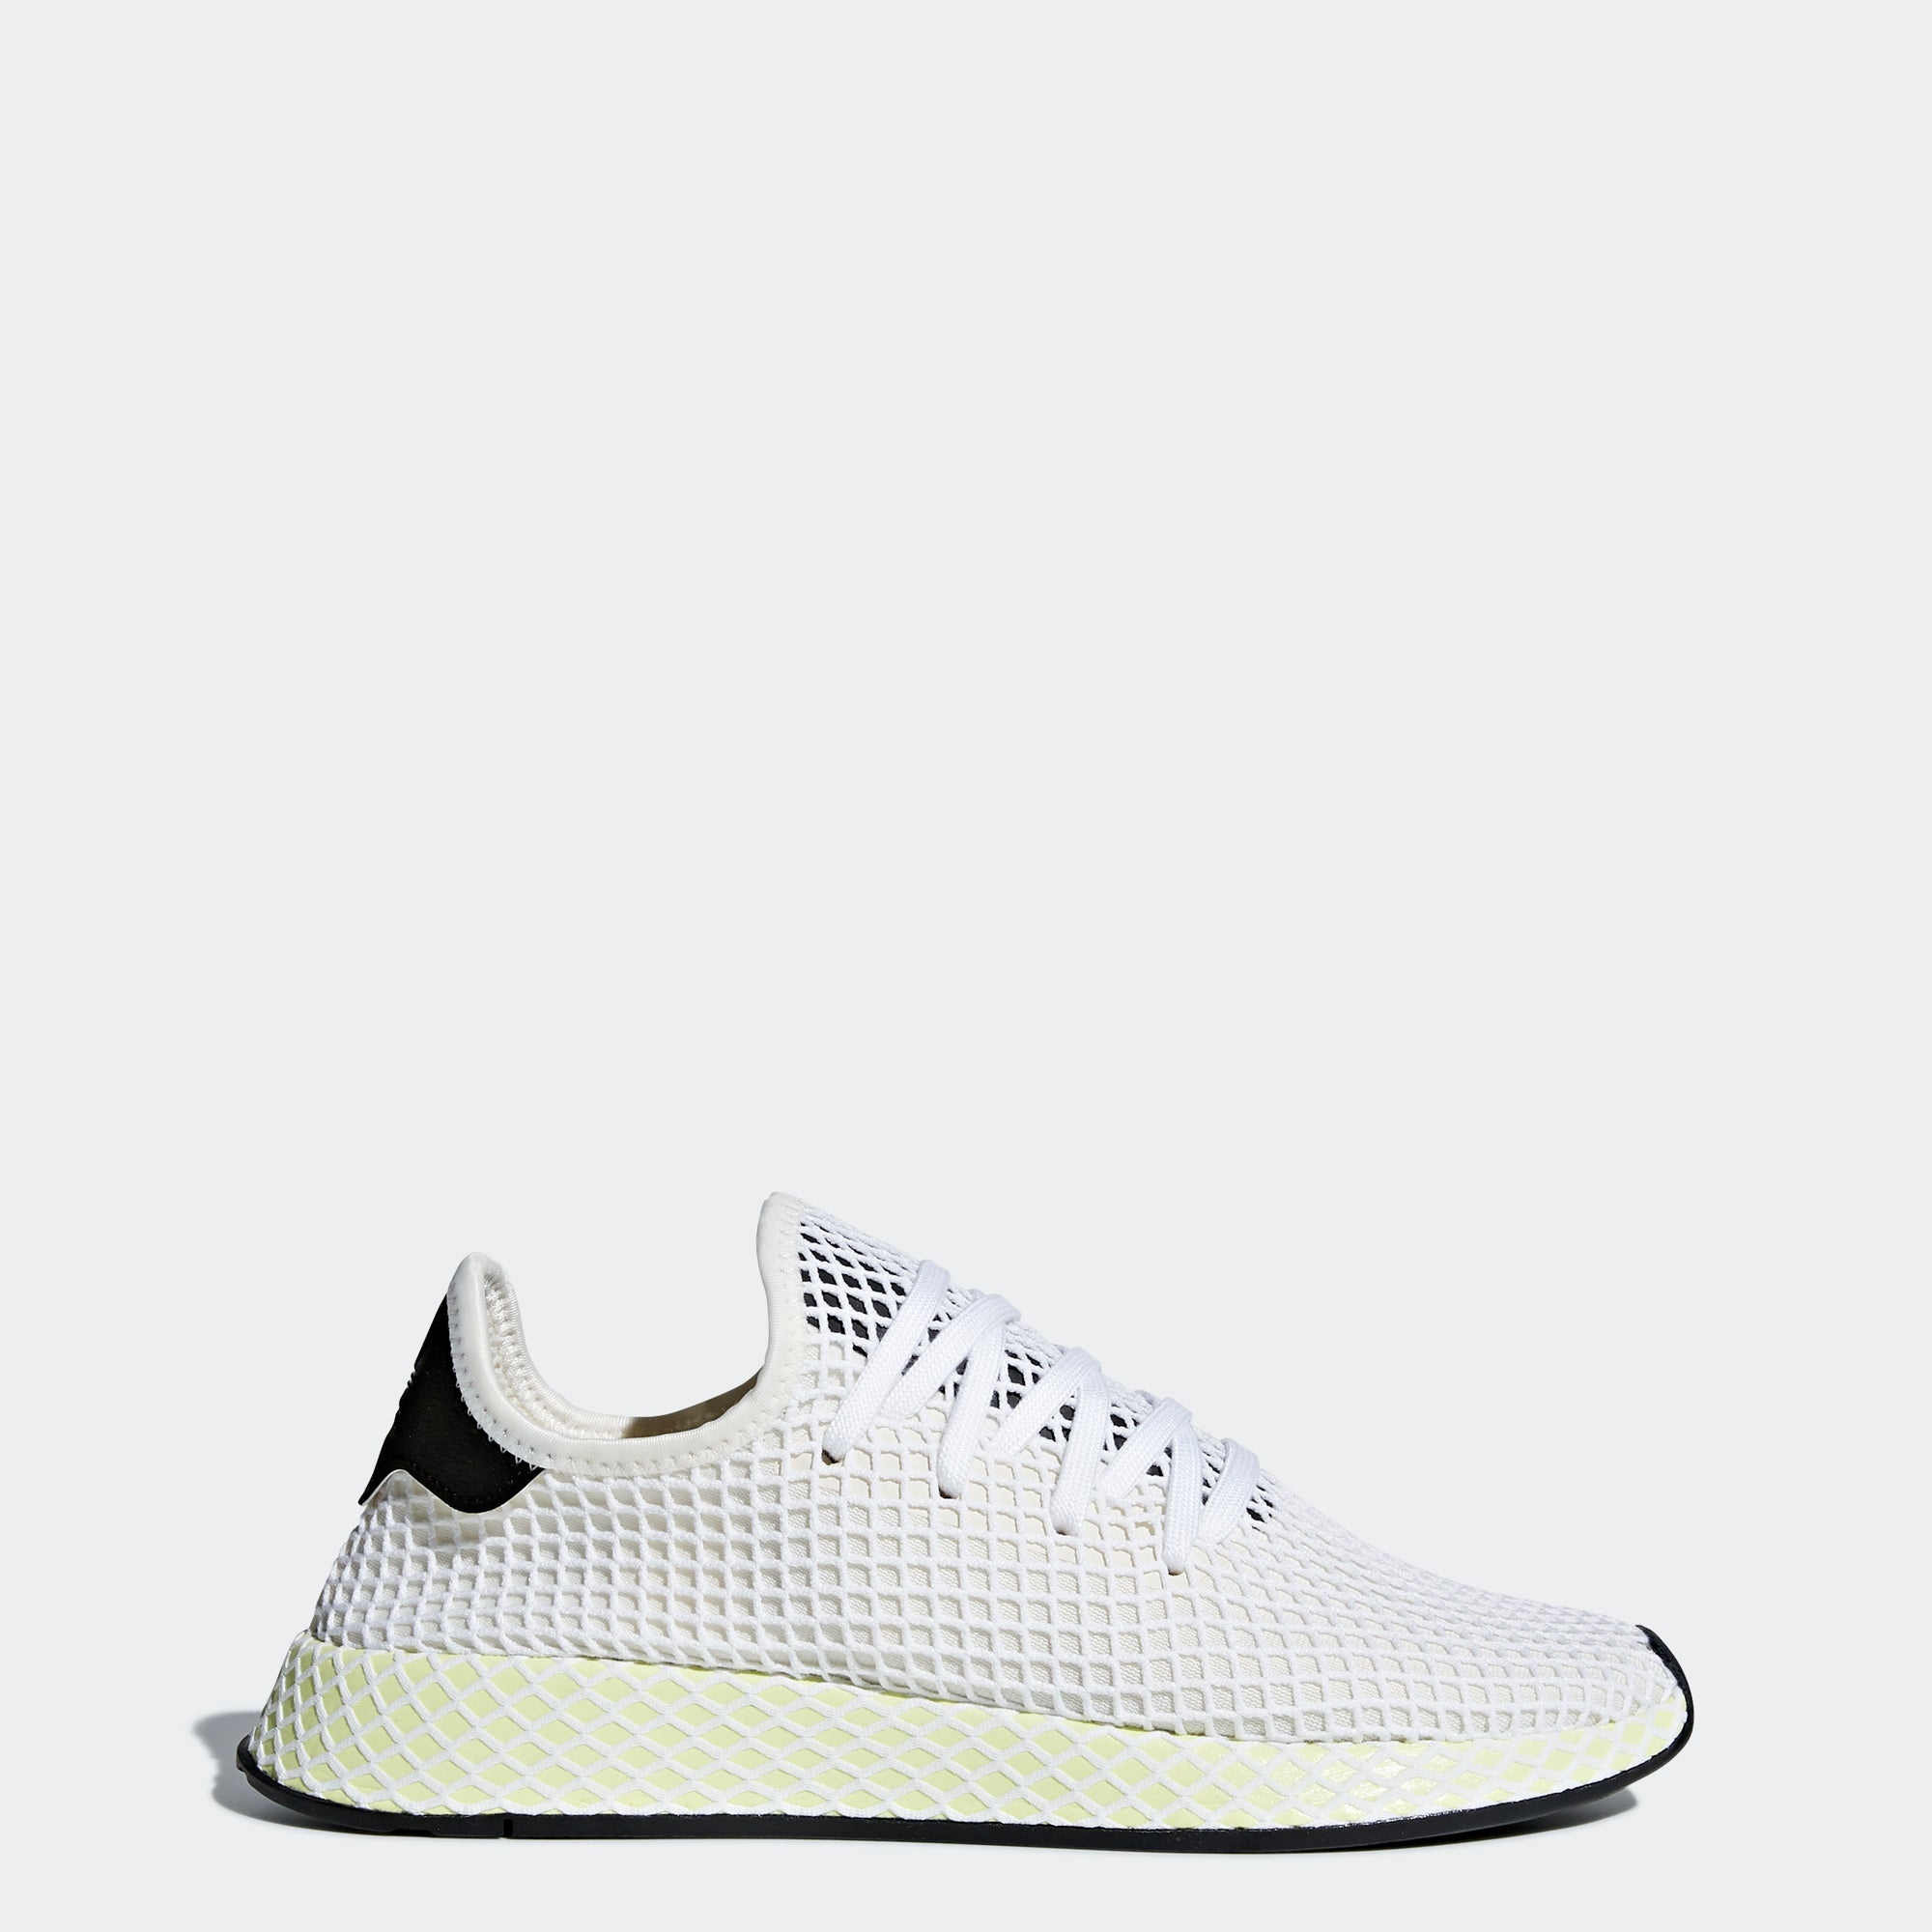 b6a6db764 Men s adidas Originals Deerupt Runner Shoes Chalk White and Core Black